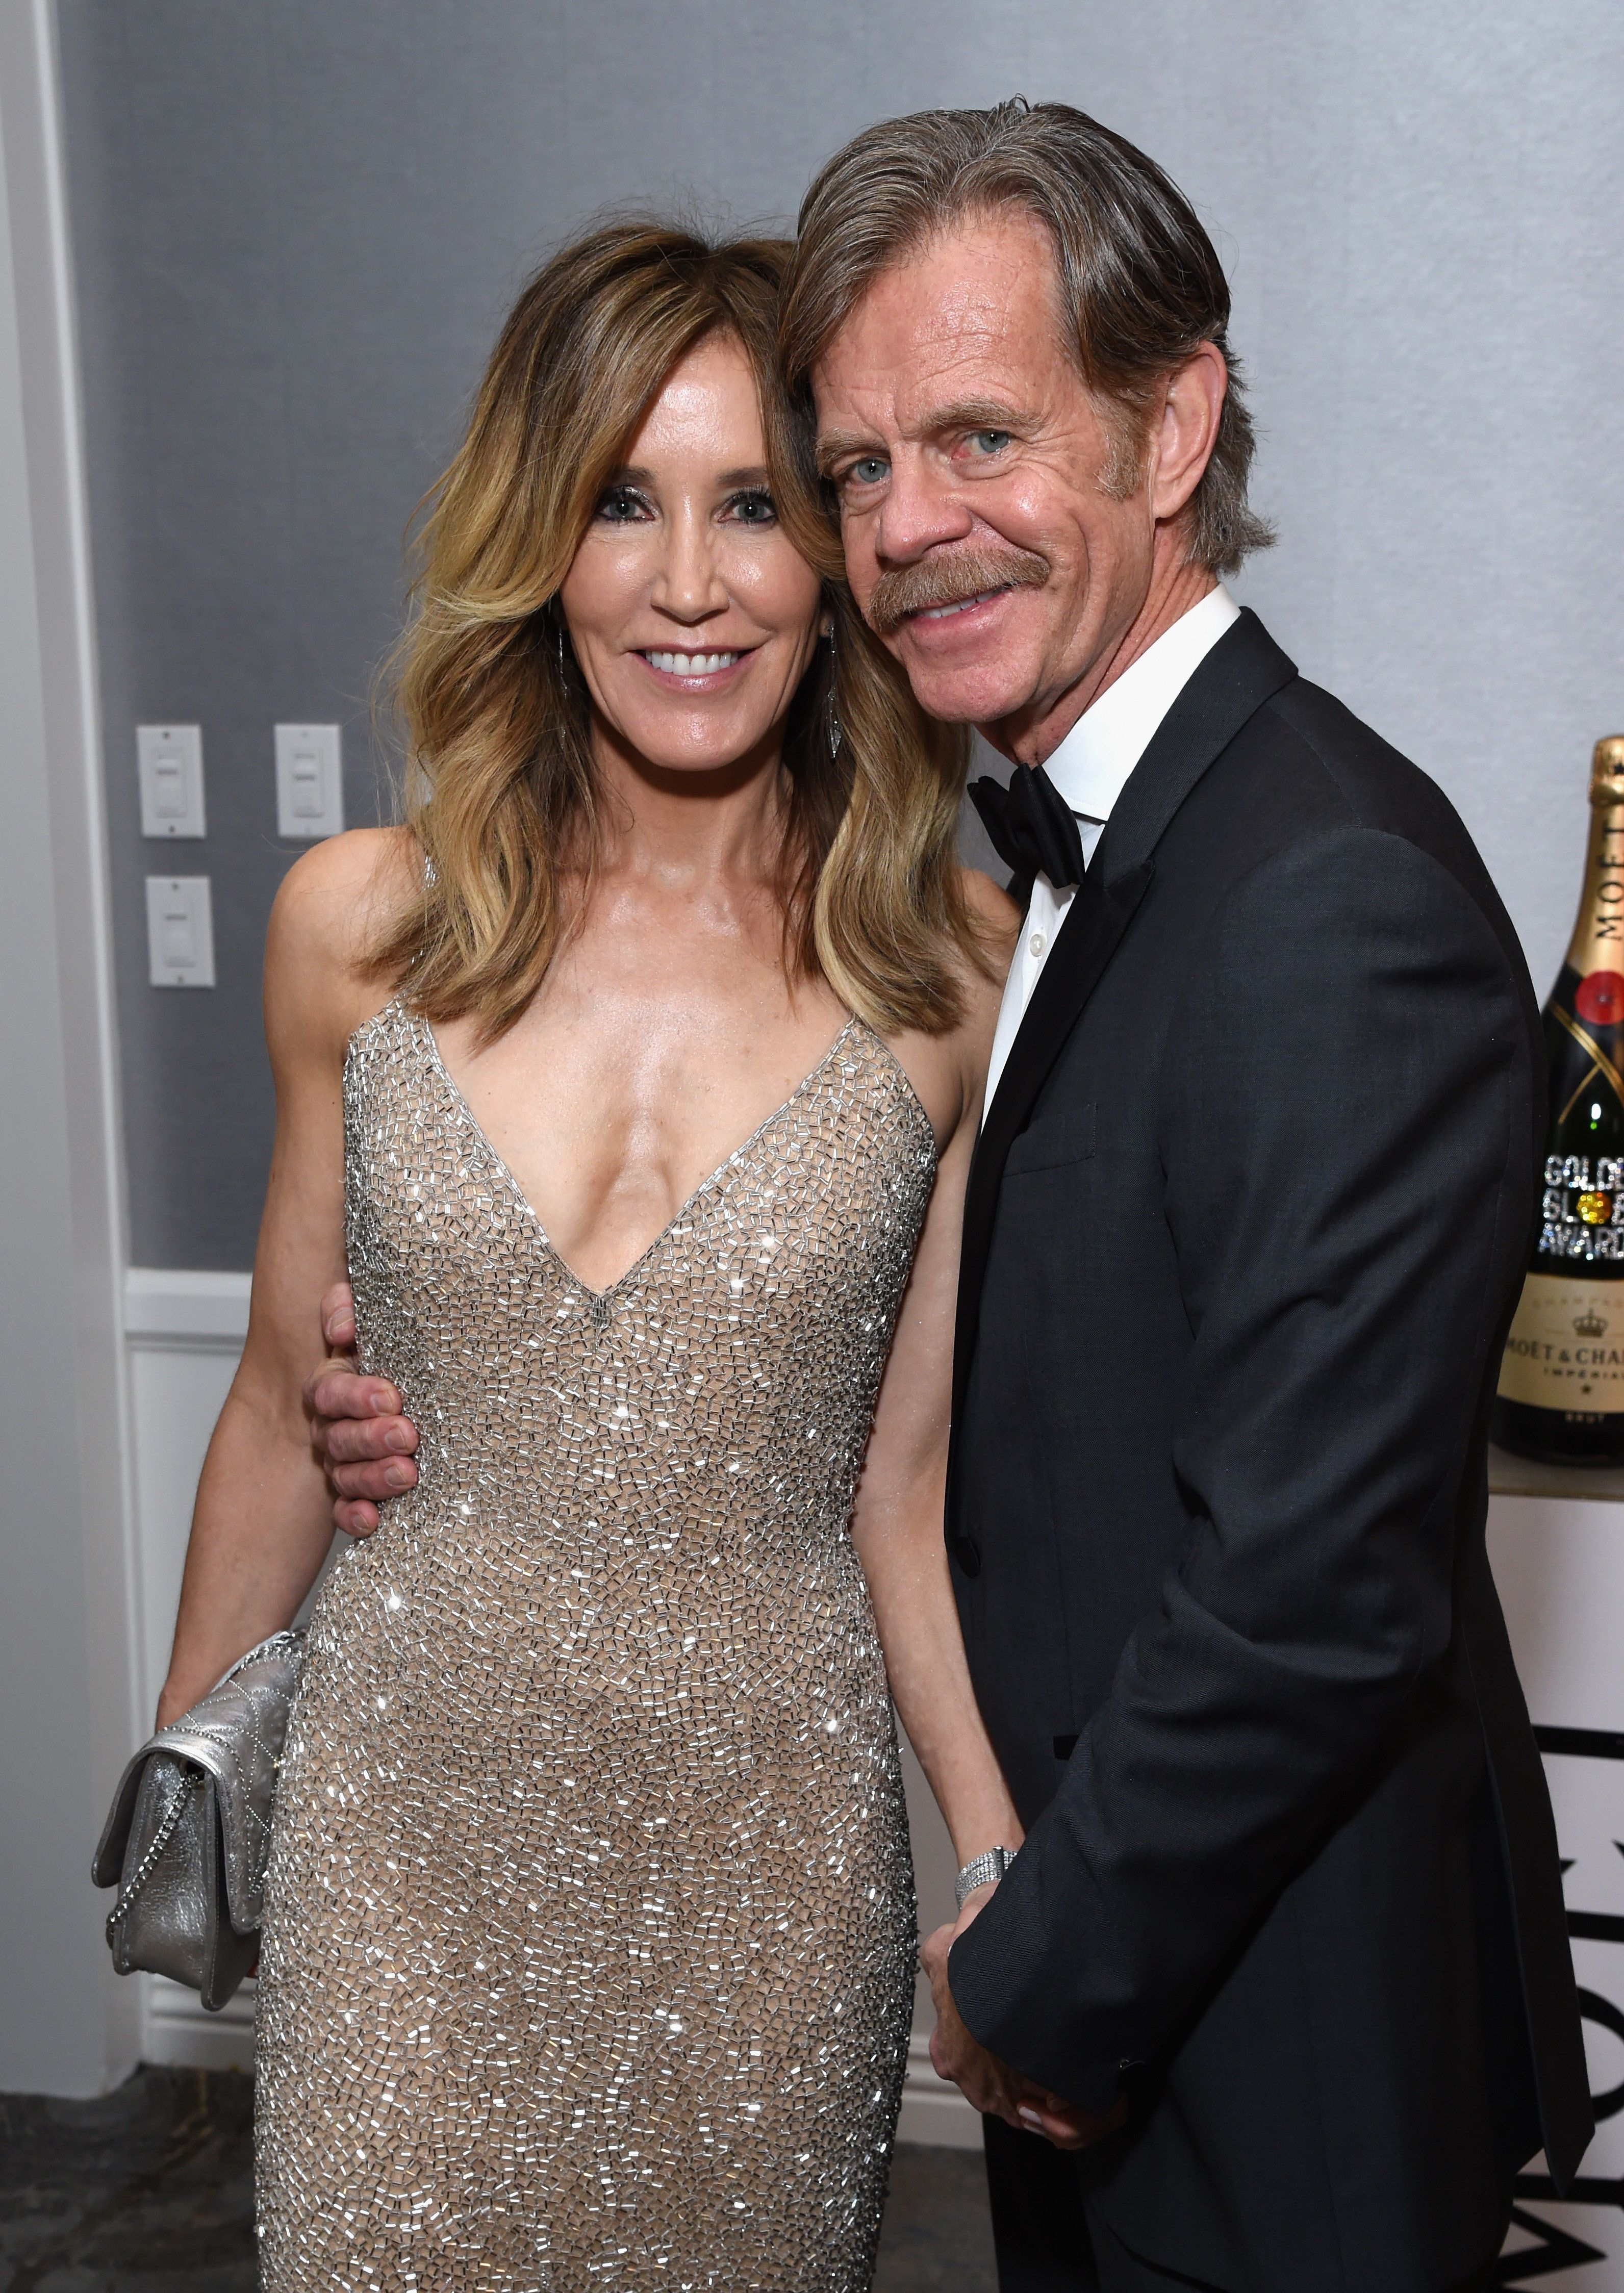 BEVERLY HILLS, CA - JANUARY 06:  Felicity Huffman and William H. Macy attend Moet & Chandon at The 76th Annual Golden Globe Awards at The Beverly Hilton Hotel on January 6, 2019 in Beverly Hills, California.  (Photo by Michael Kovac/Getty Images for Moet & Chandon)